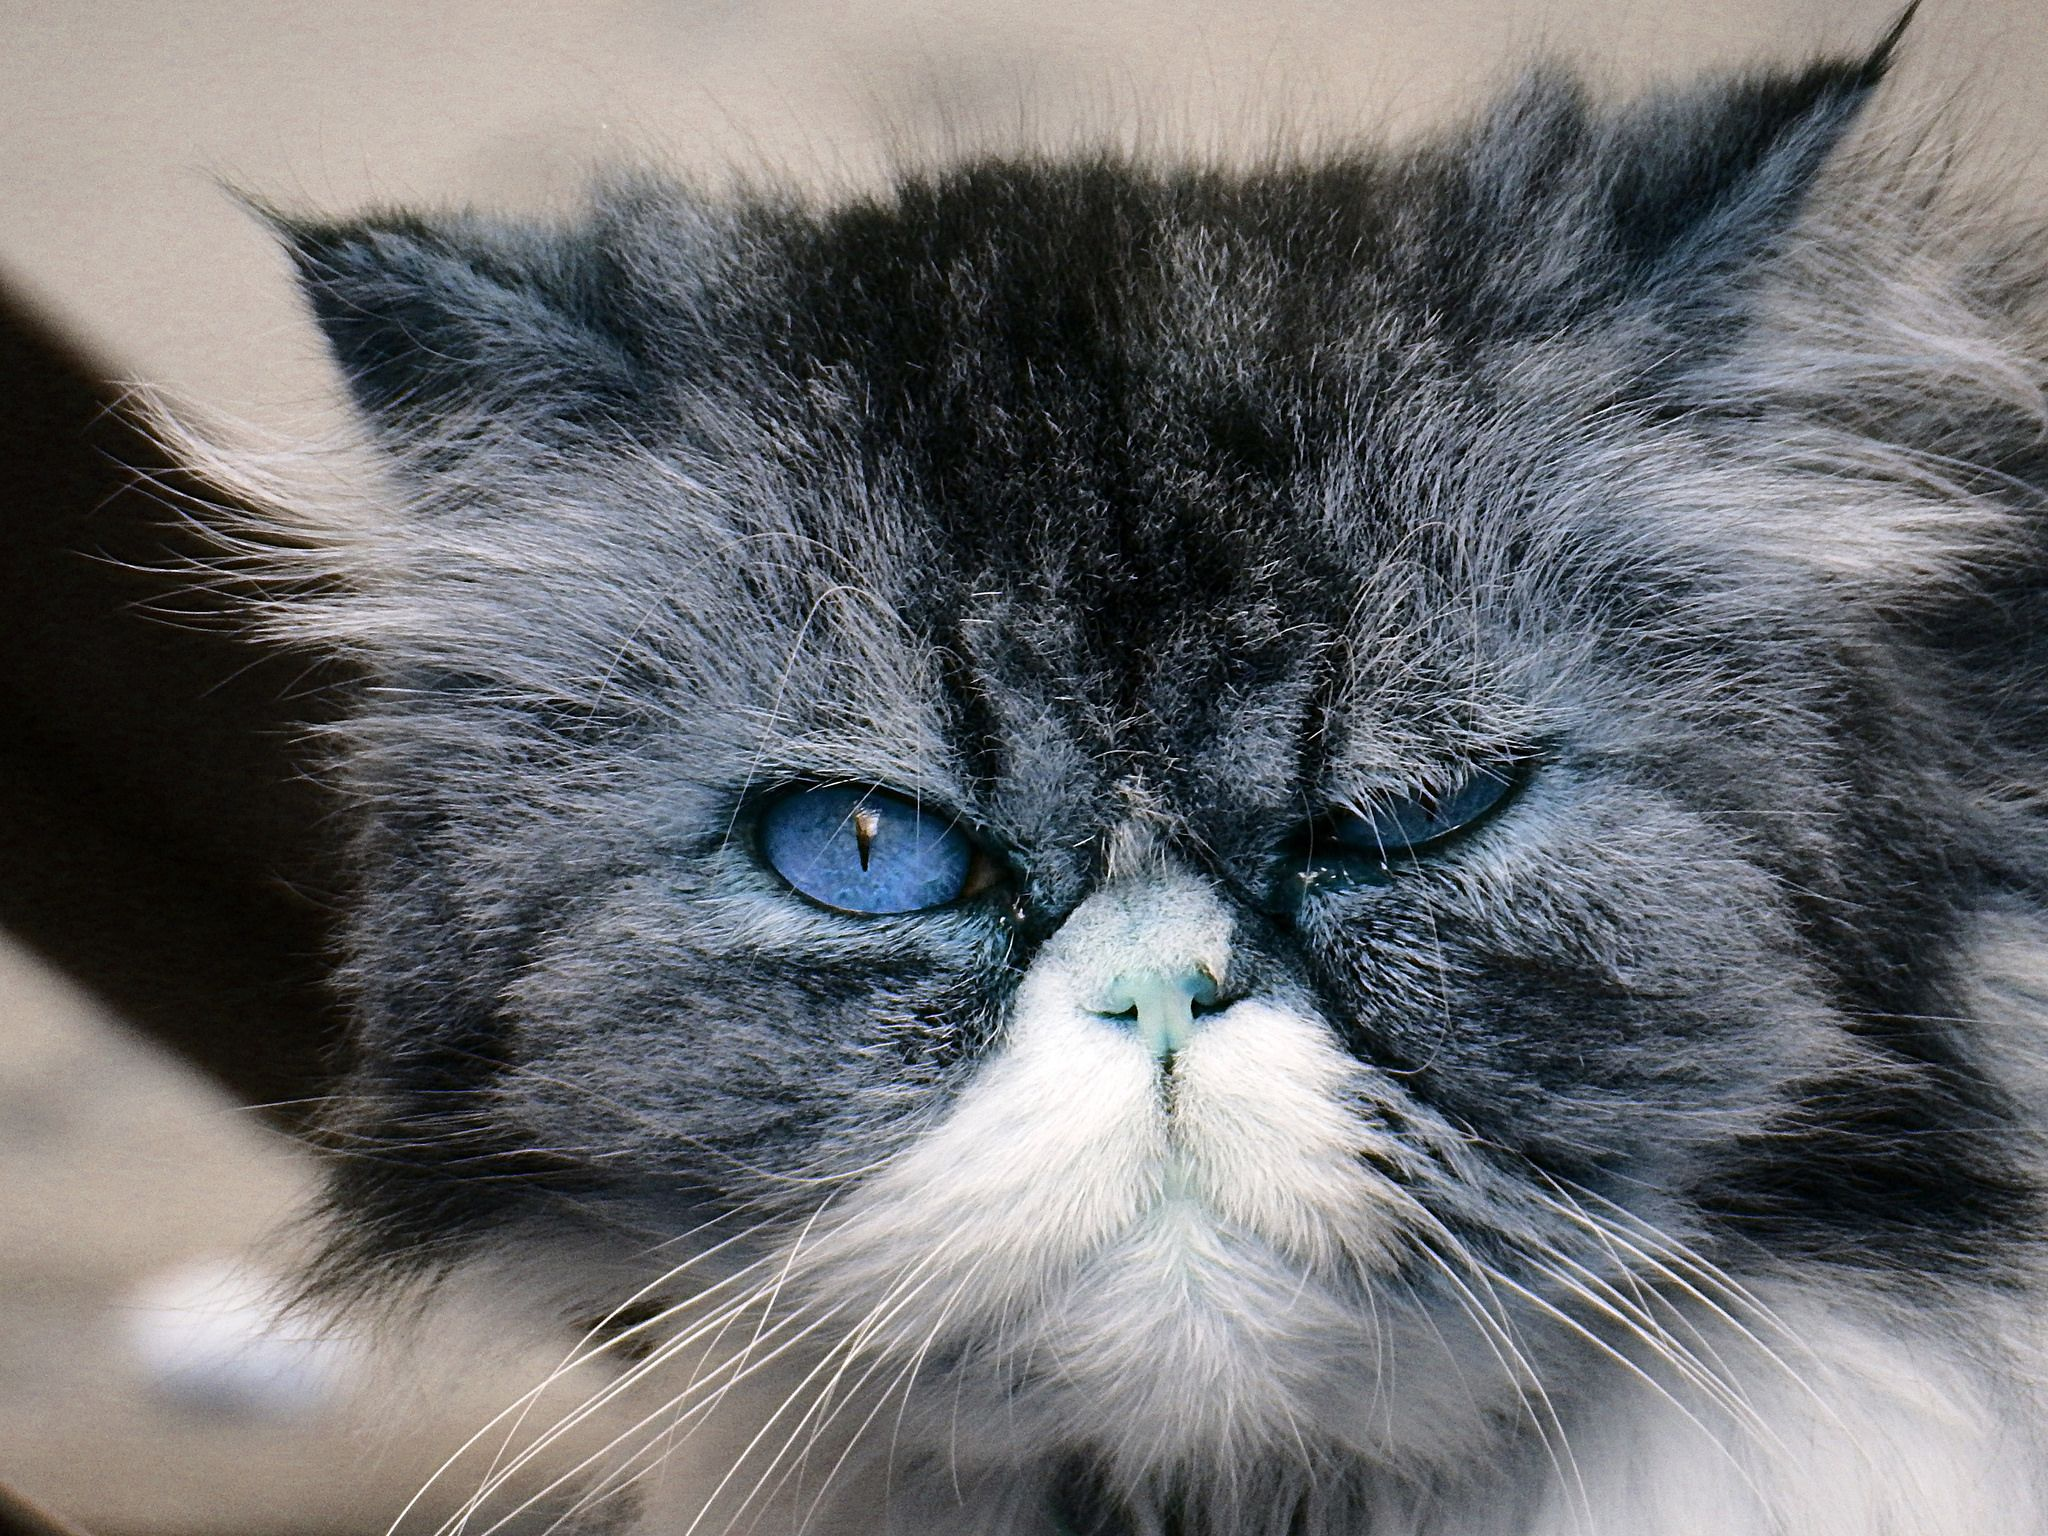 Malaga Blue Cat - umm, it's Monday?